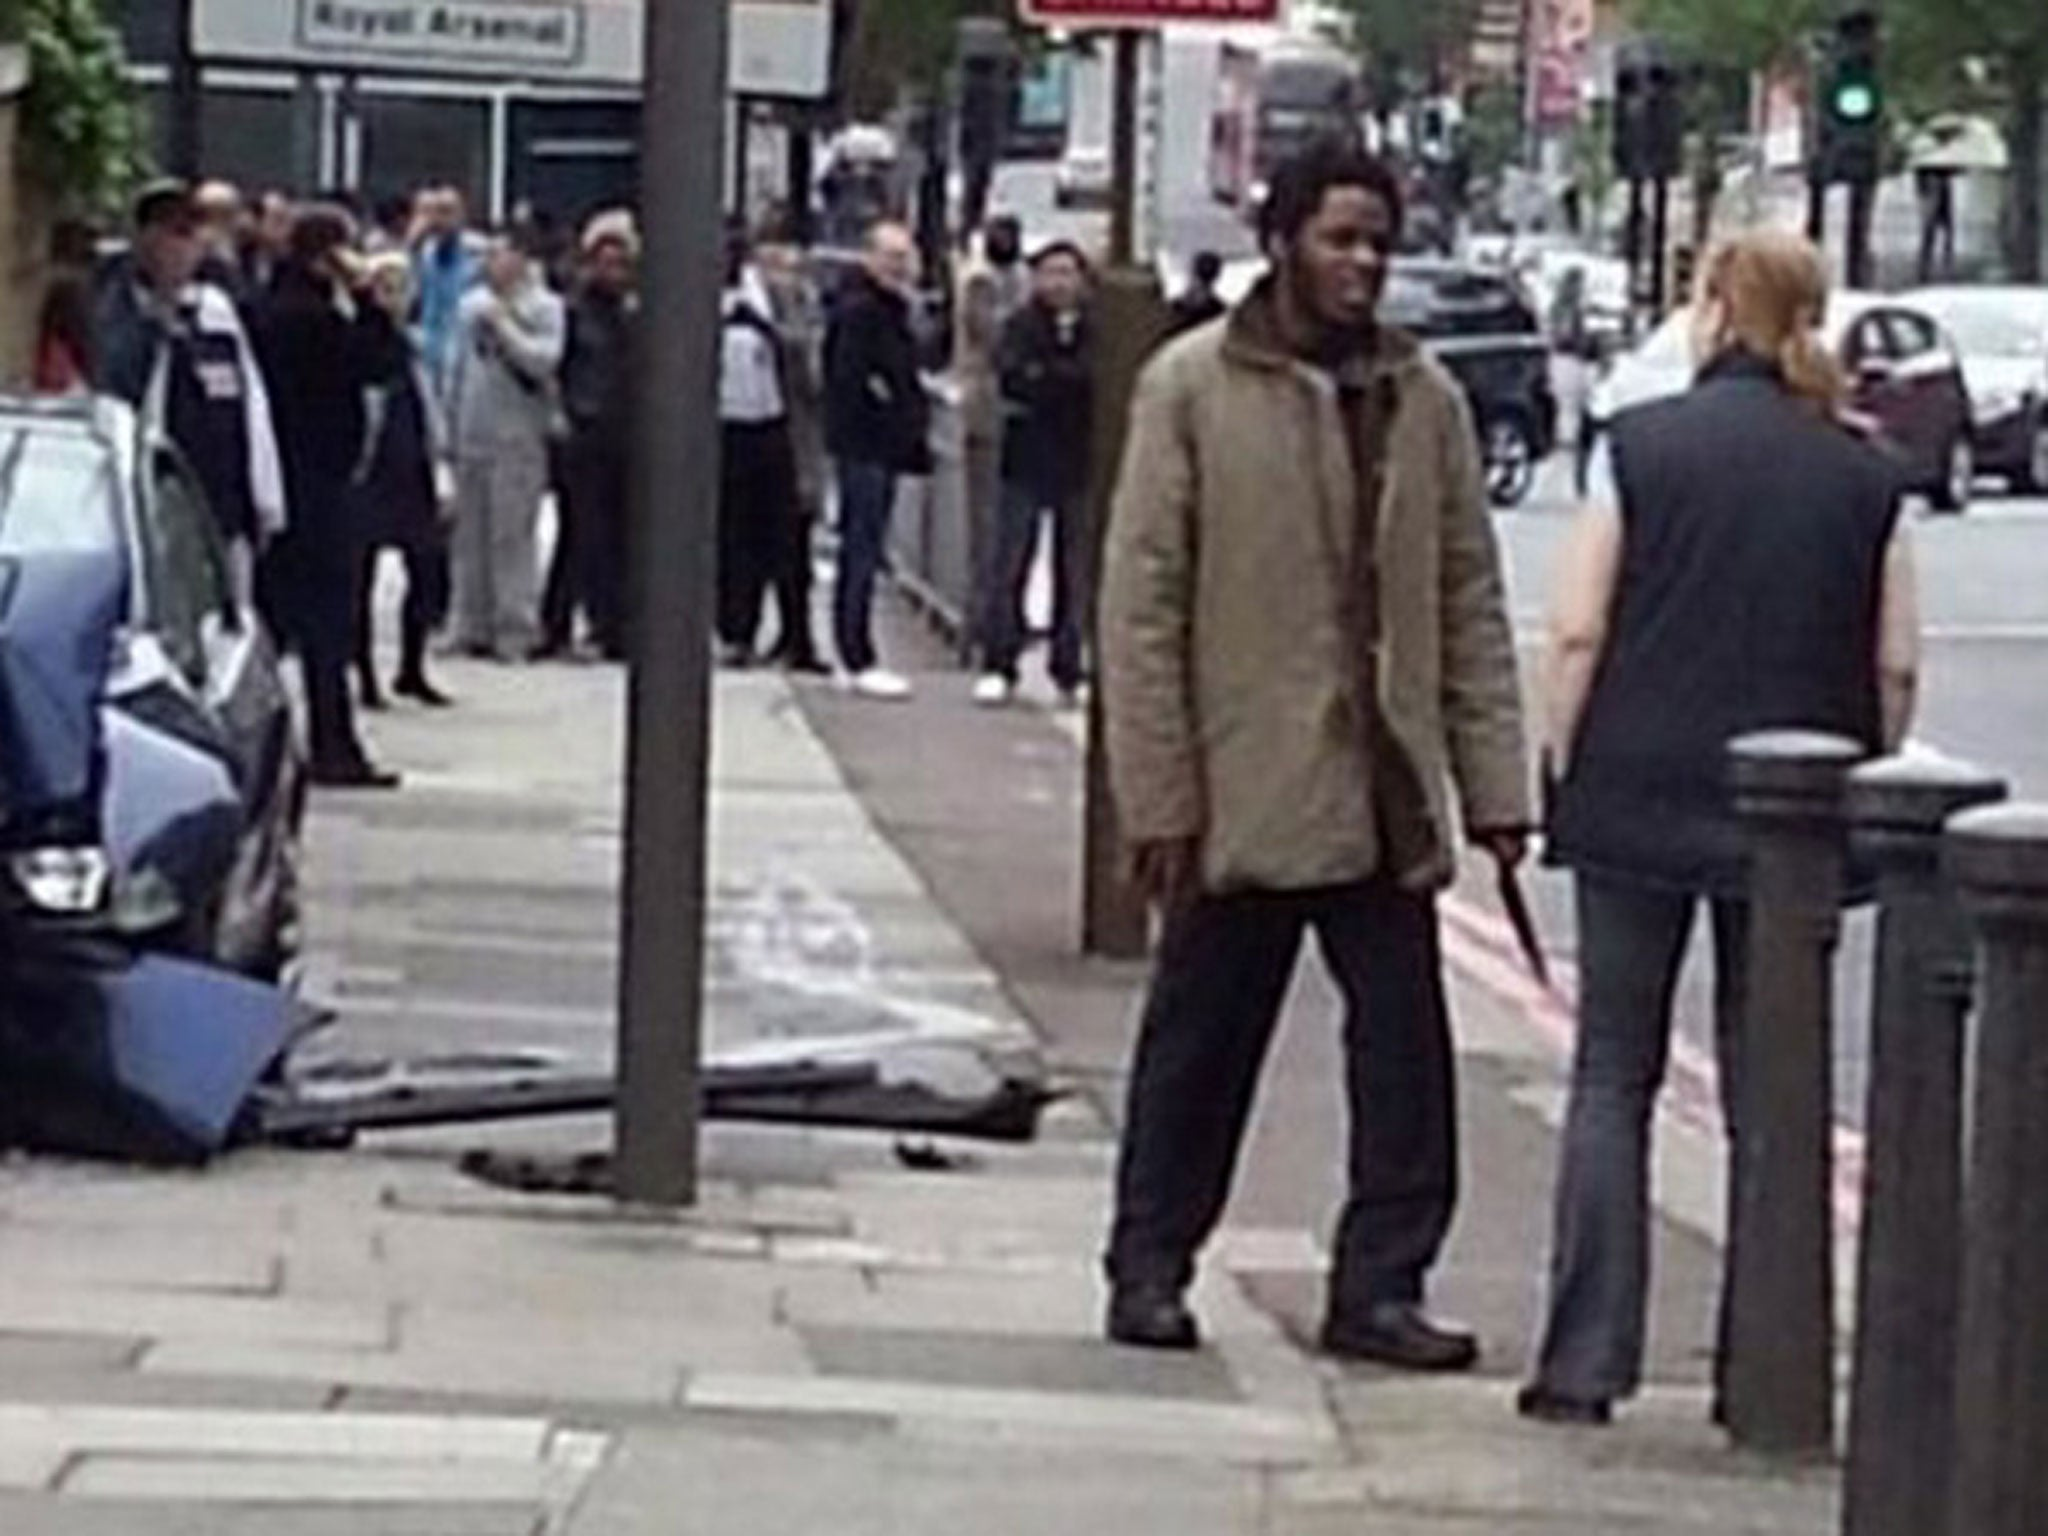 Ingrid Loyau-Kennett, the mother-of-two hailed as a hero for confronting  Woolwich attackers, thought: 'better me than a child' | The Independent |  The Independent